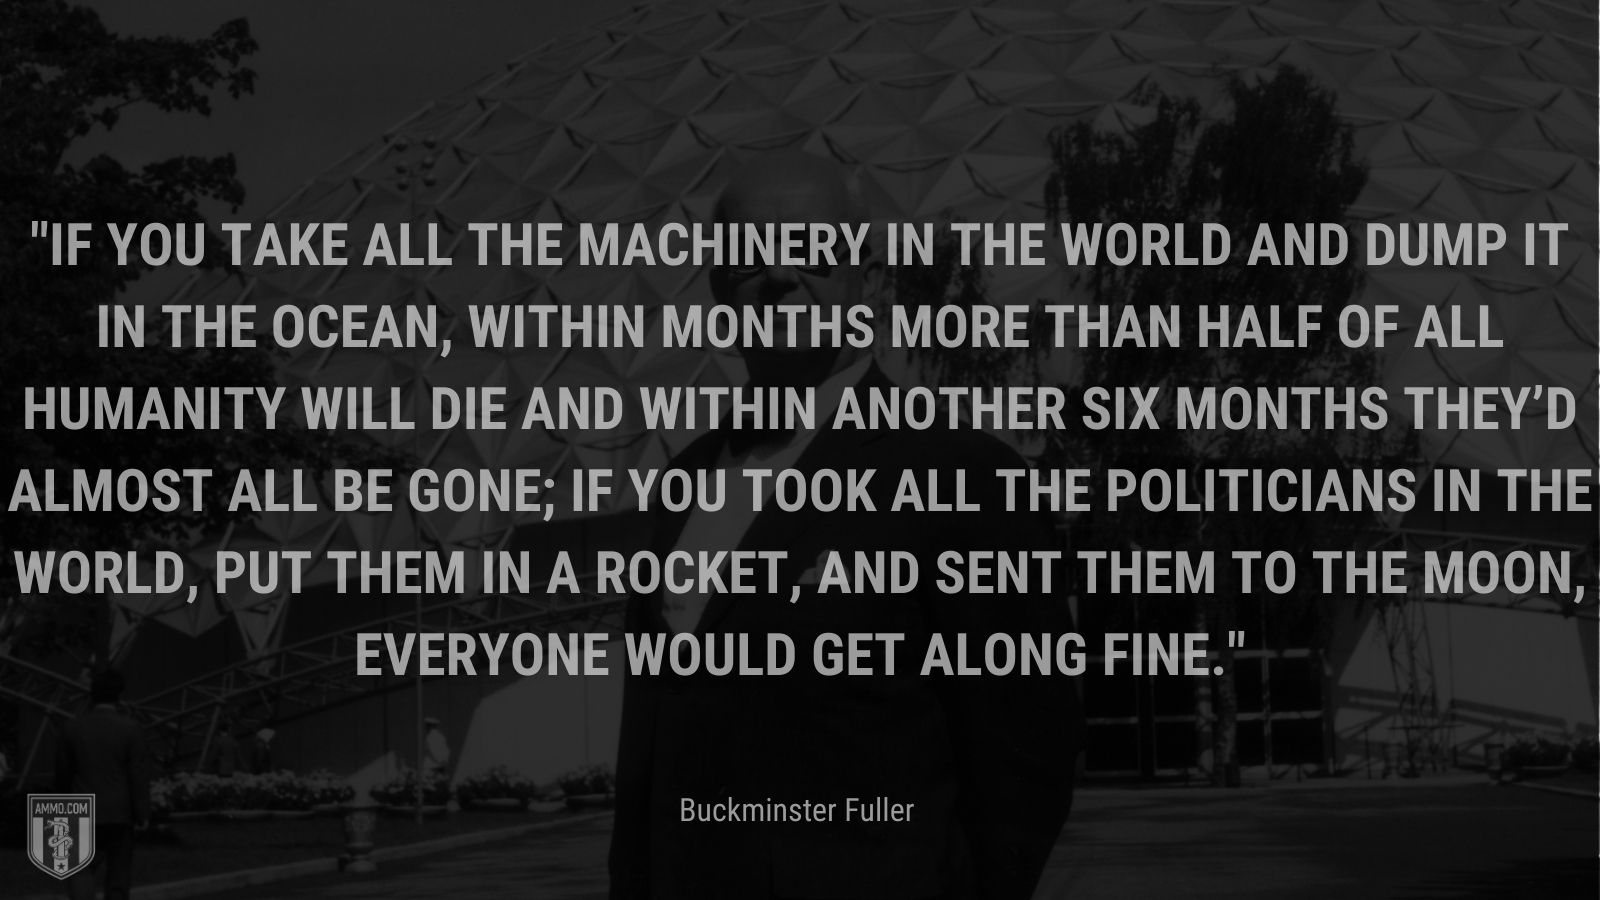 """""""If you take all the machinery in the world and dump it in the ocean, within months more than half of all humanity will die and within another six months they'd almost all be gone; if you took all the politicians in the world, put them in a rocket, and sent them to the moon, everyone would get along fine. - Buckminster Fuller"""